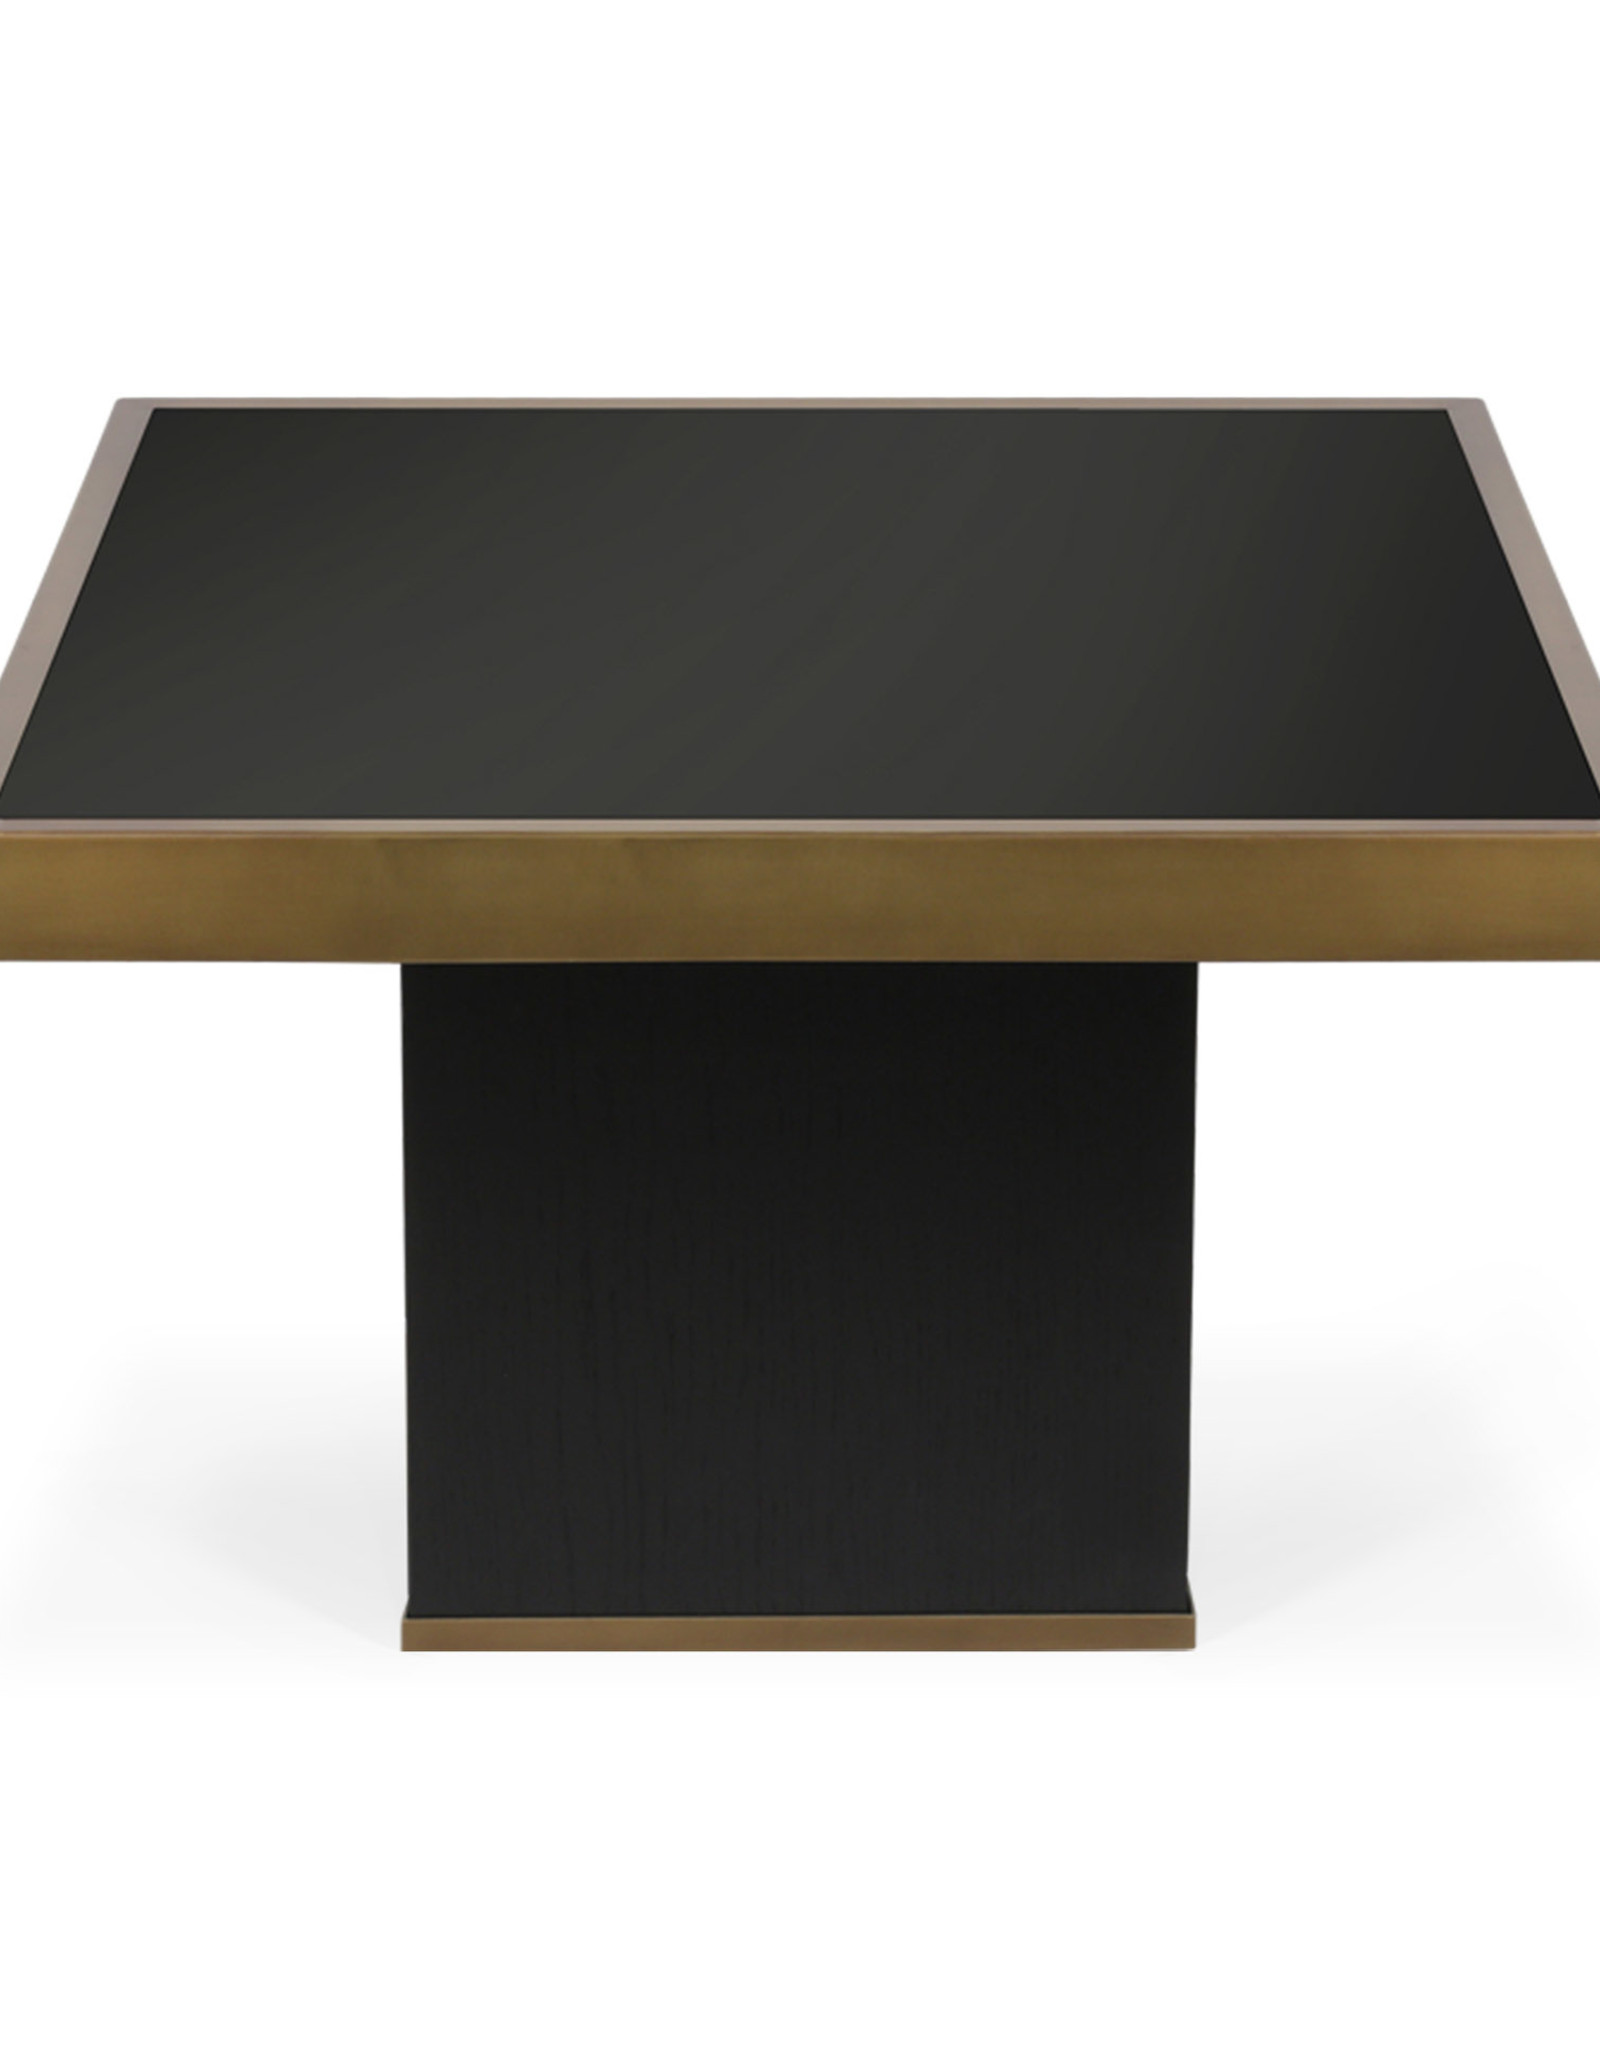 Trifecta charcoal coffee table - L